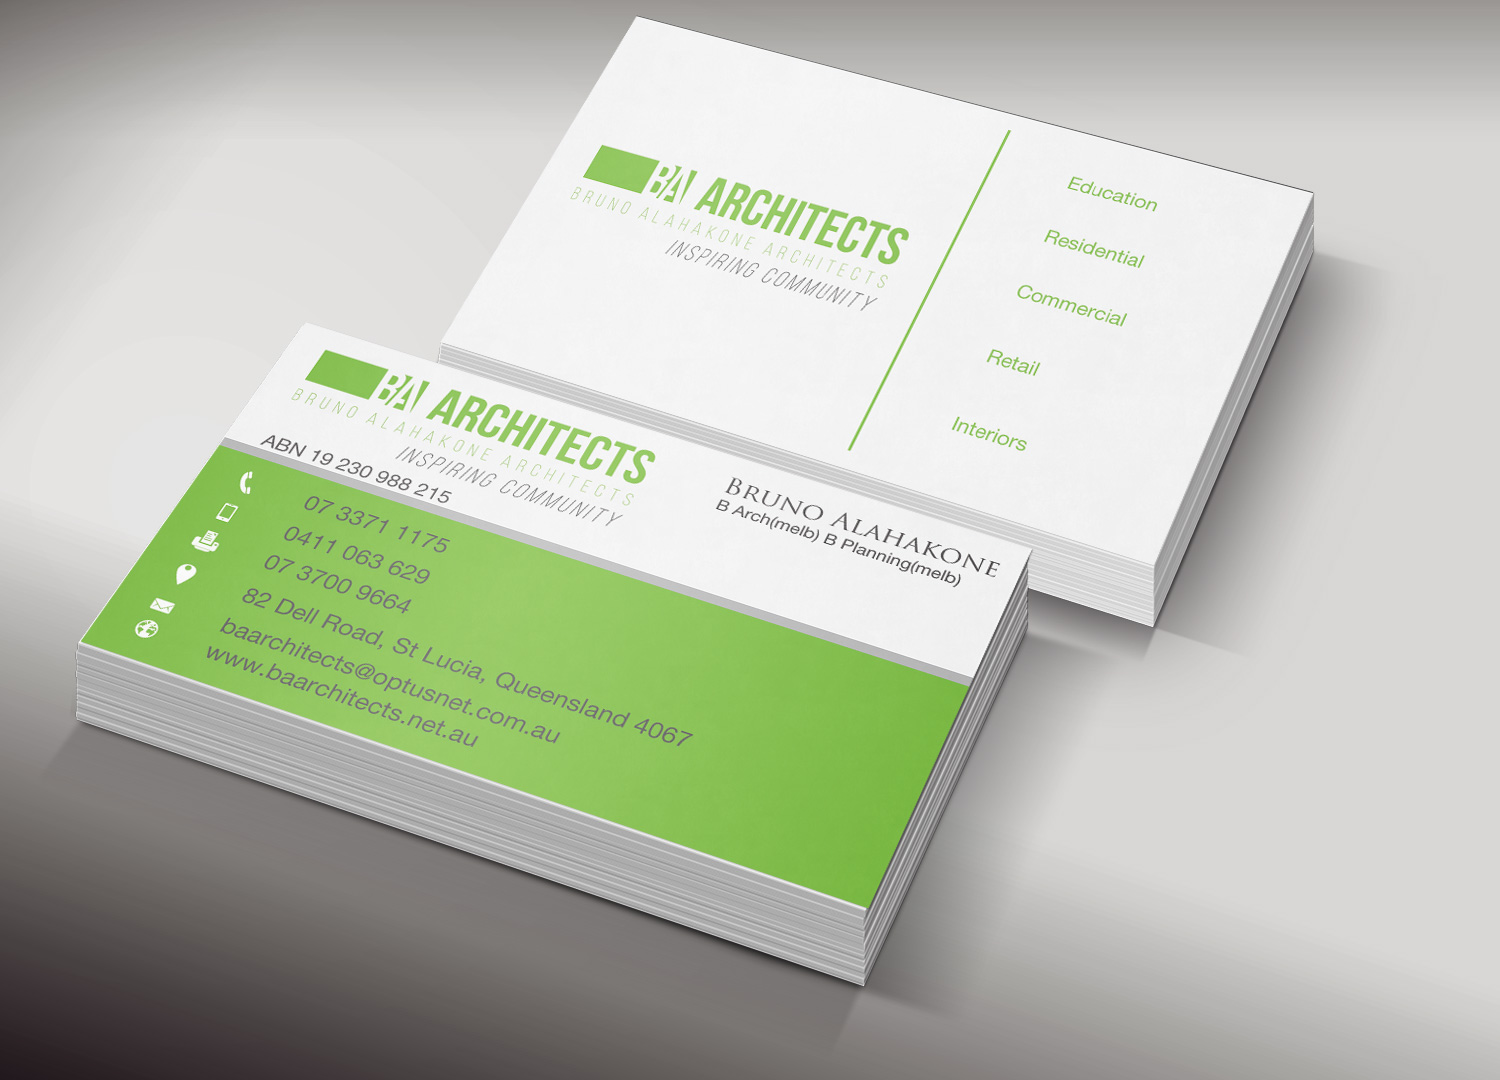 Professional Service Business Card Design for BA Architects by ...